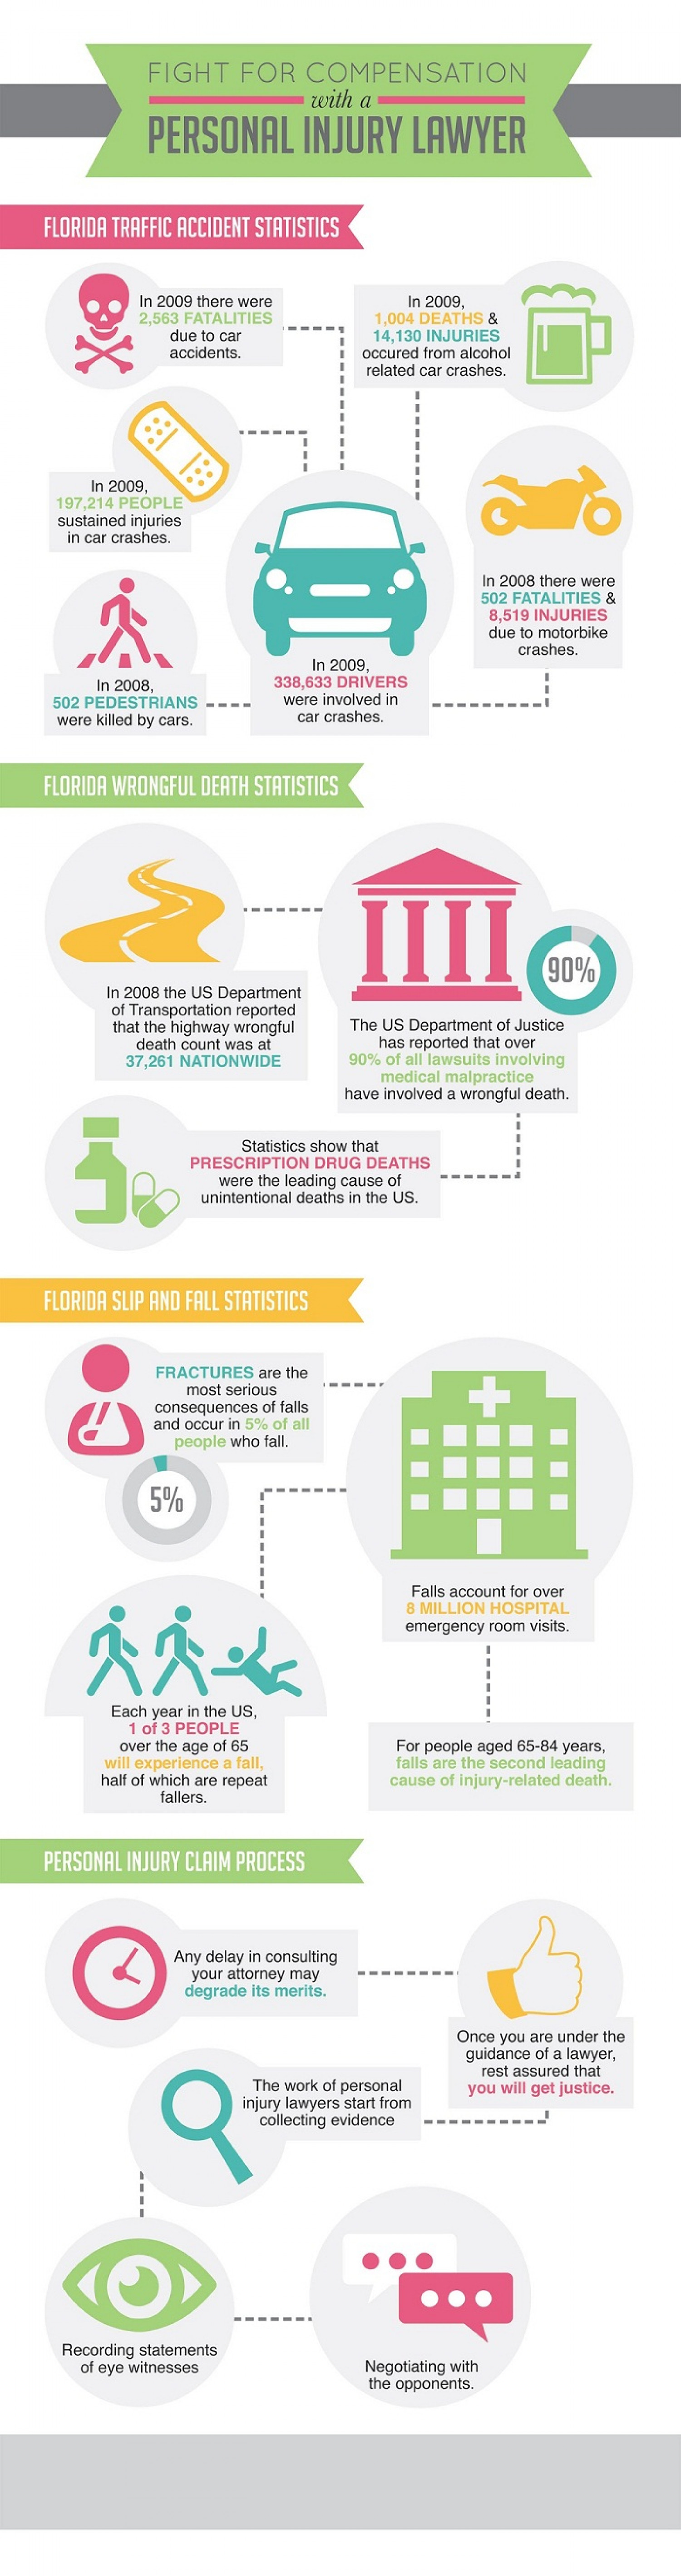 Fight for Compensation with a Personal Injury Lawyer  Infographic